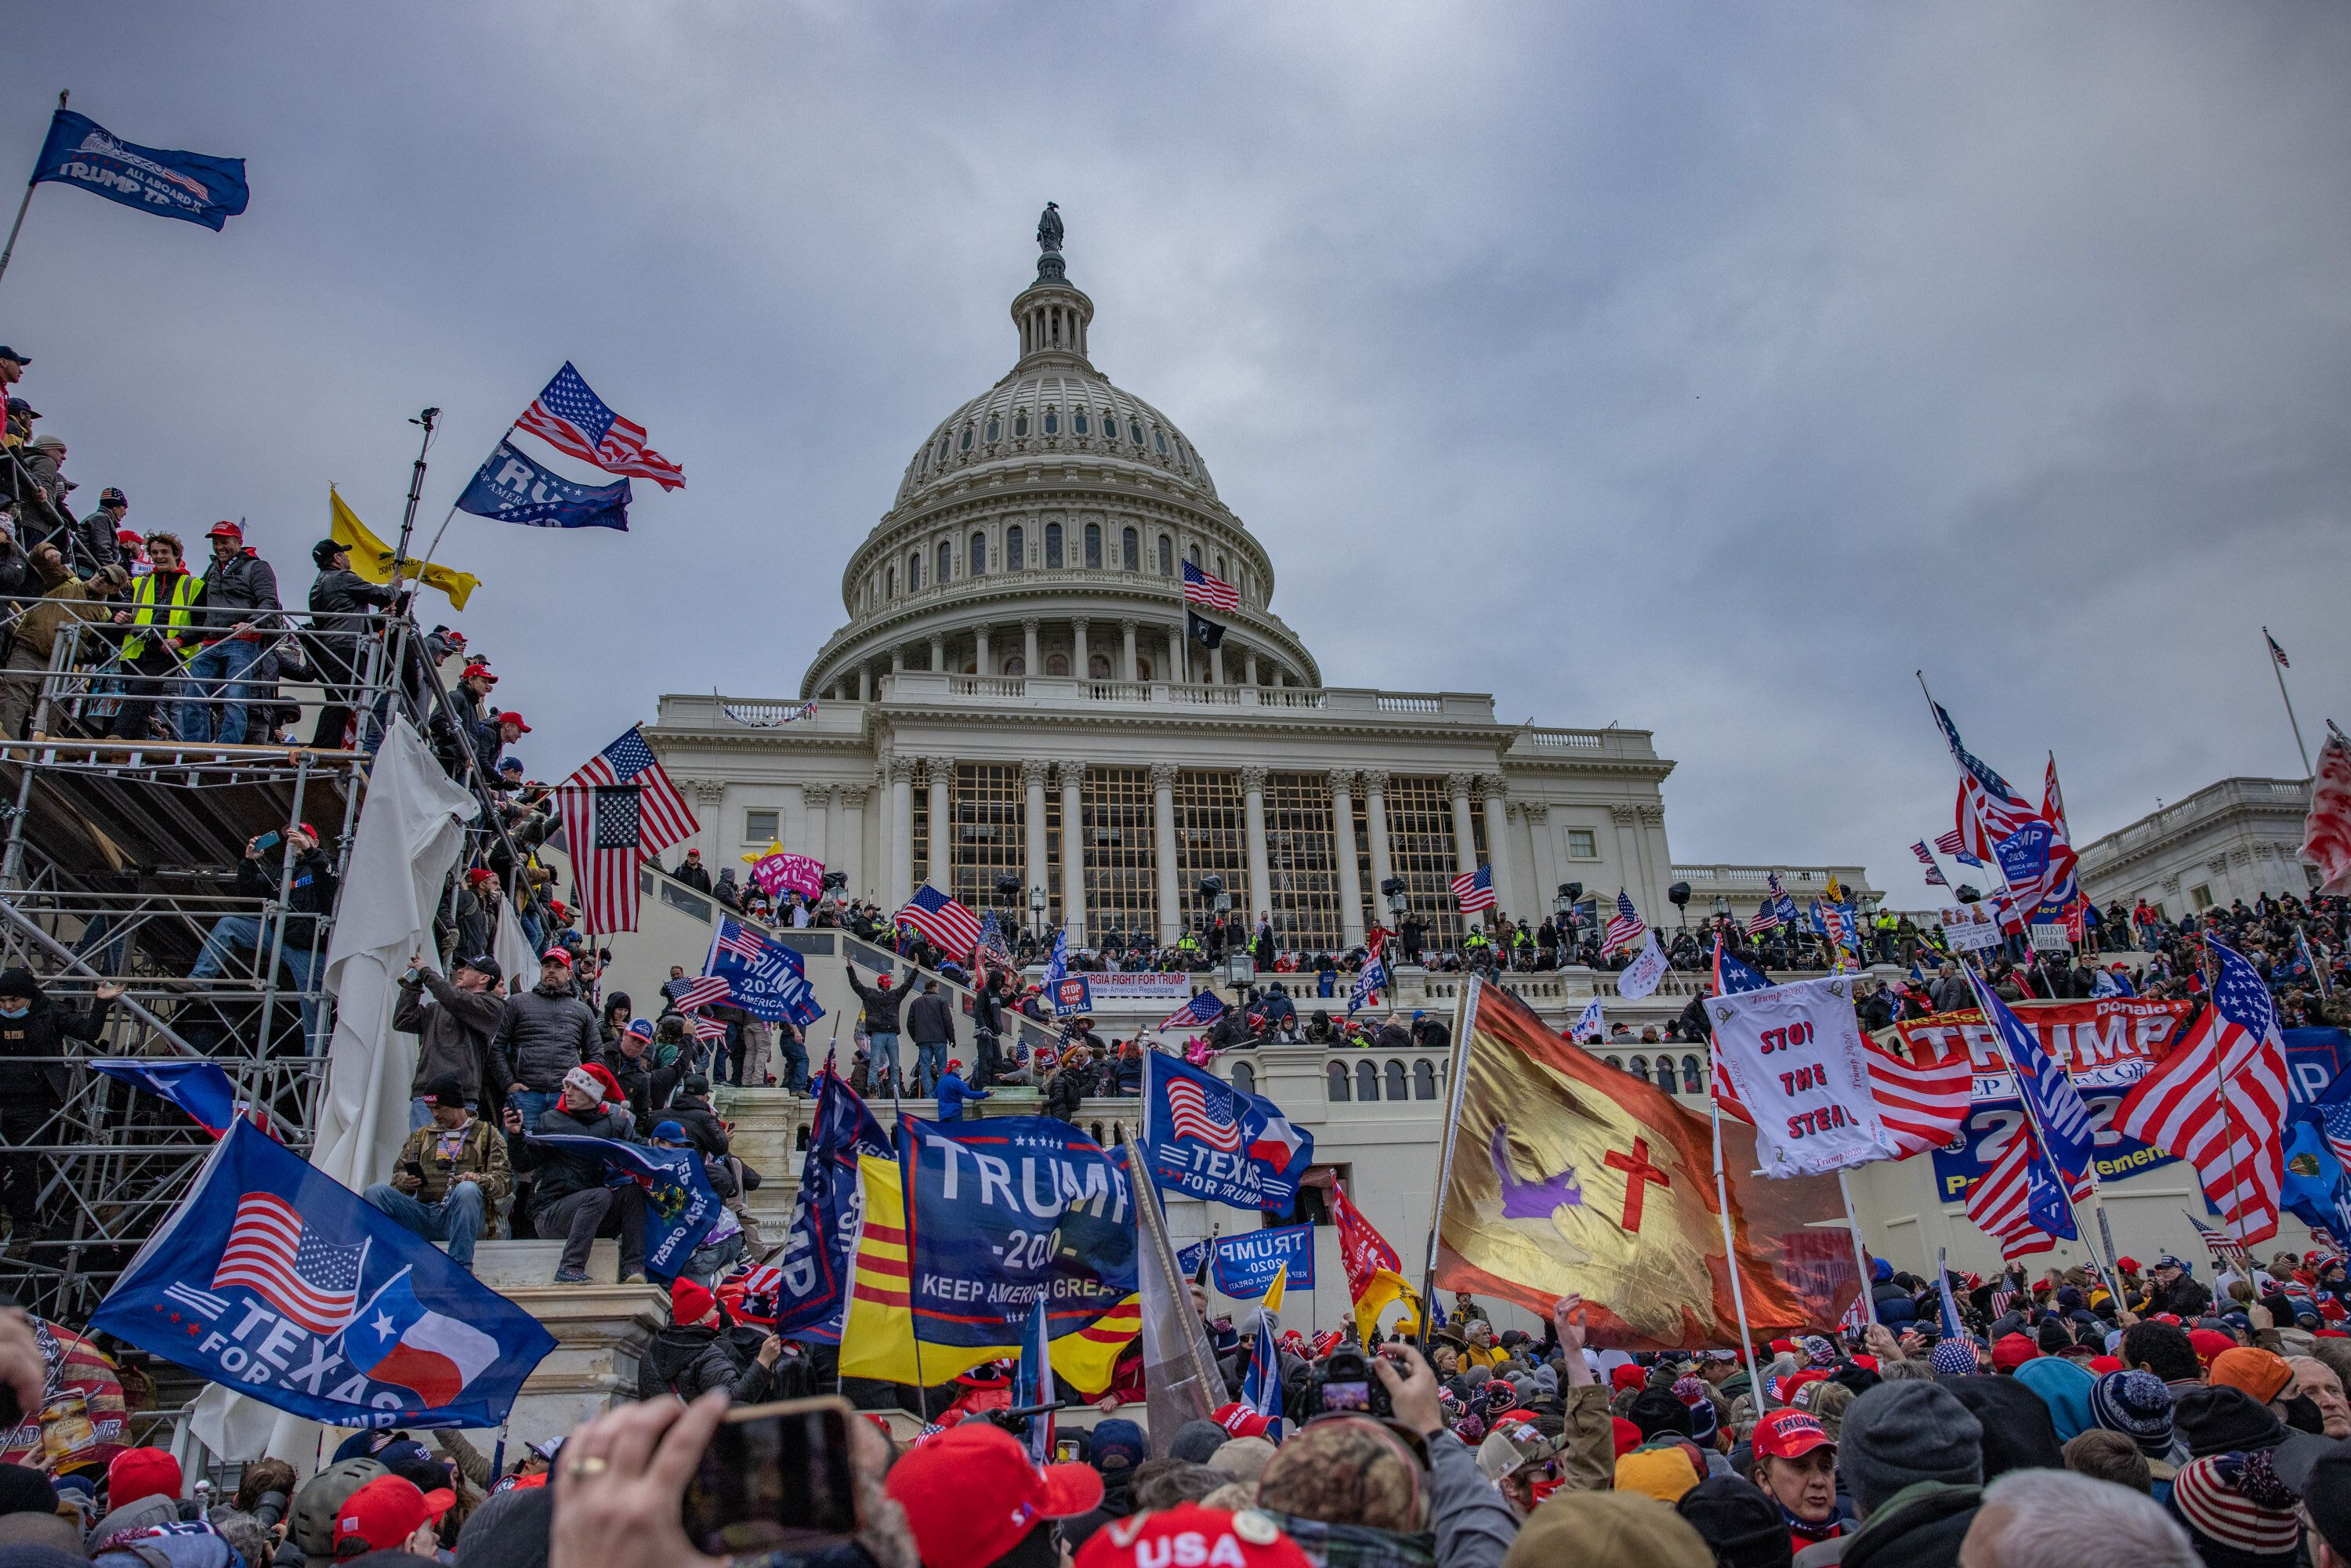 A violent mob of Donald Trump supporters stormed the U.S. Capitol on Jan. 6.